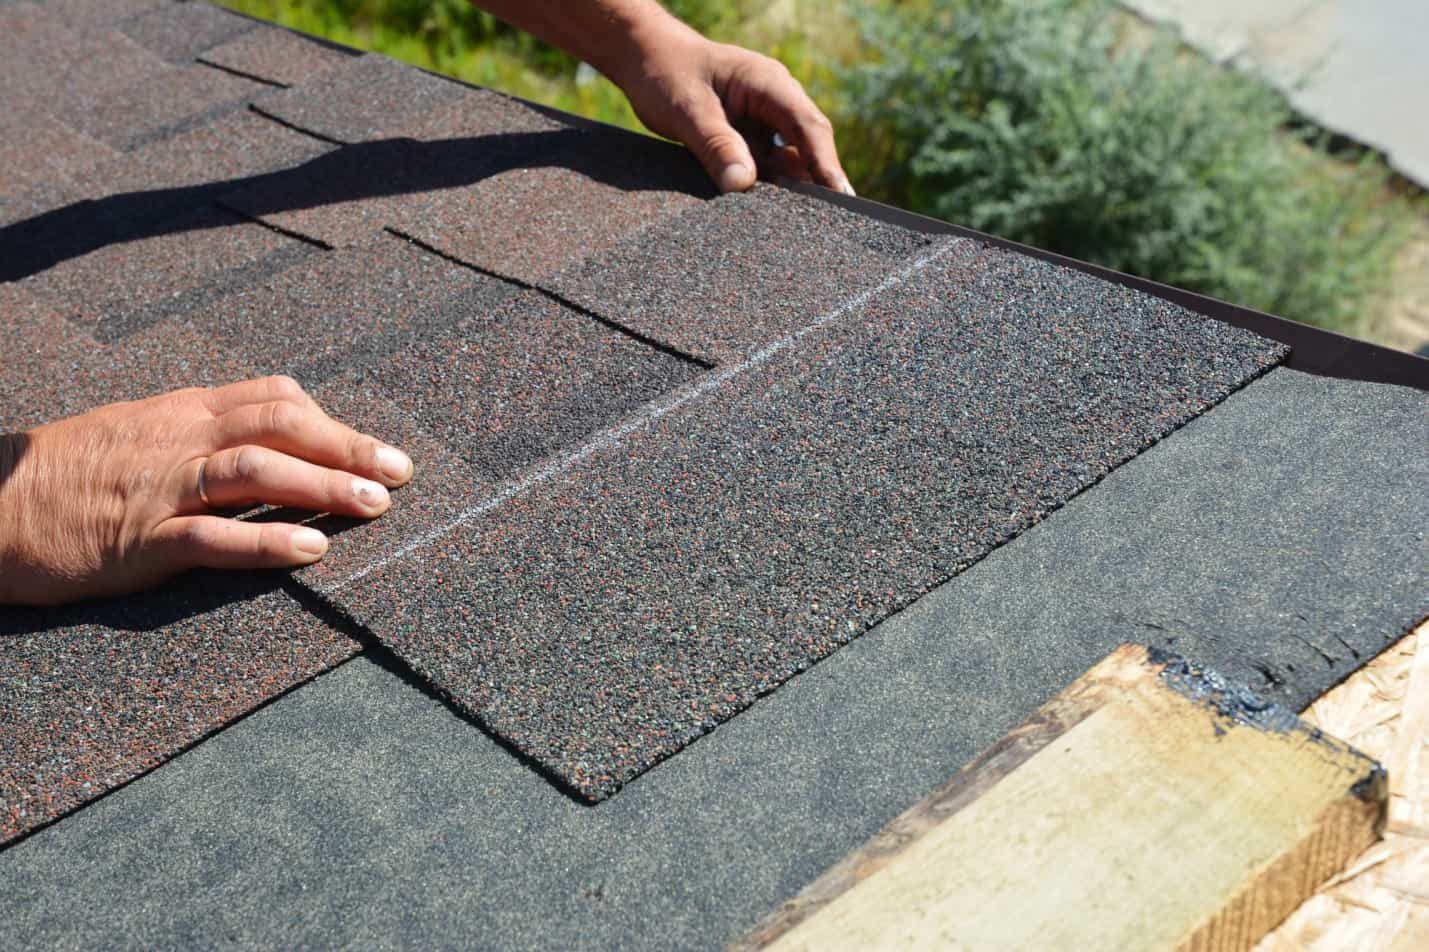 A Beginner's Guide on How to Shingle a Roof. Covering the roof with asphalt shingles